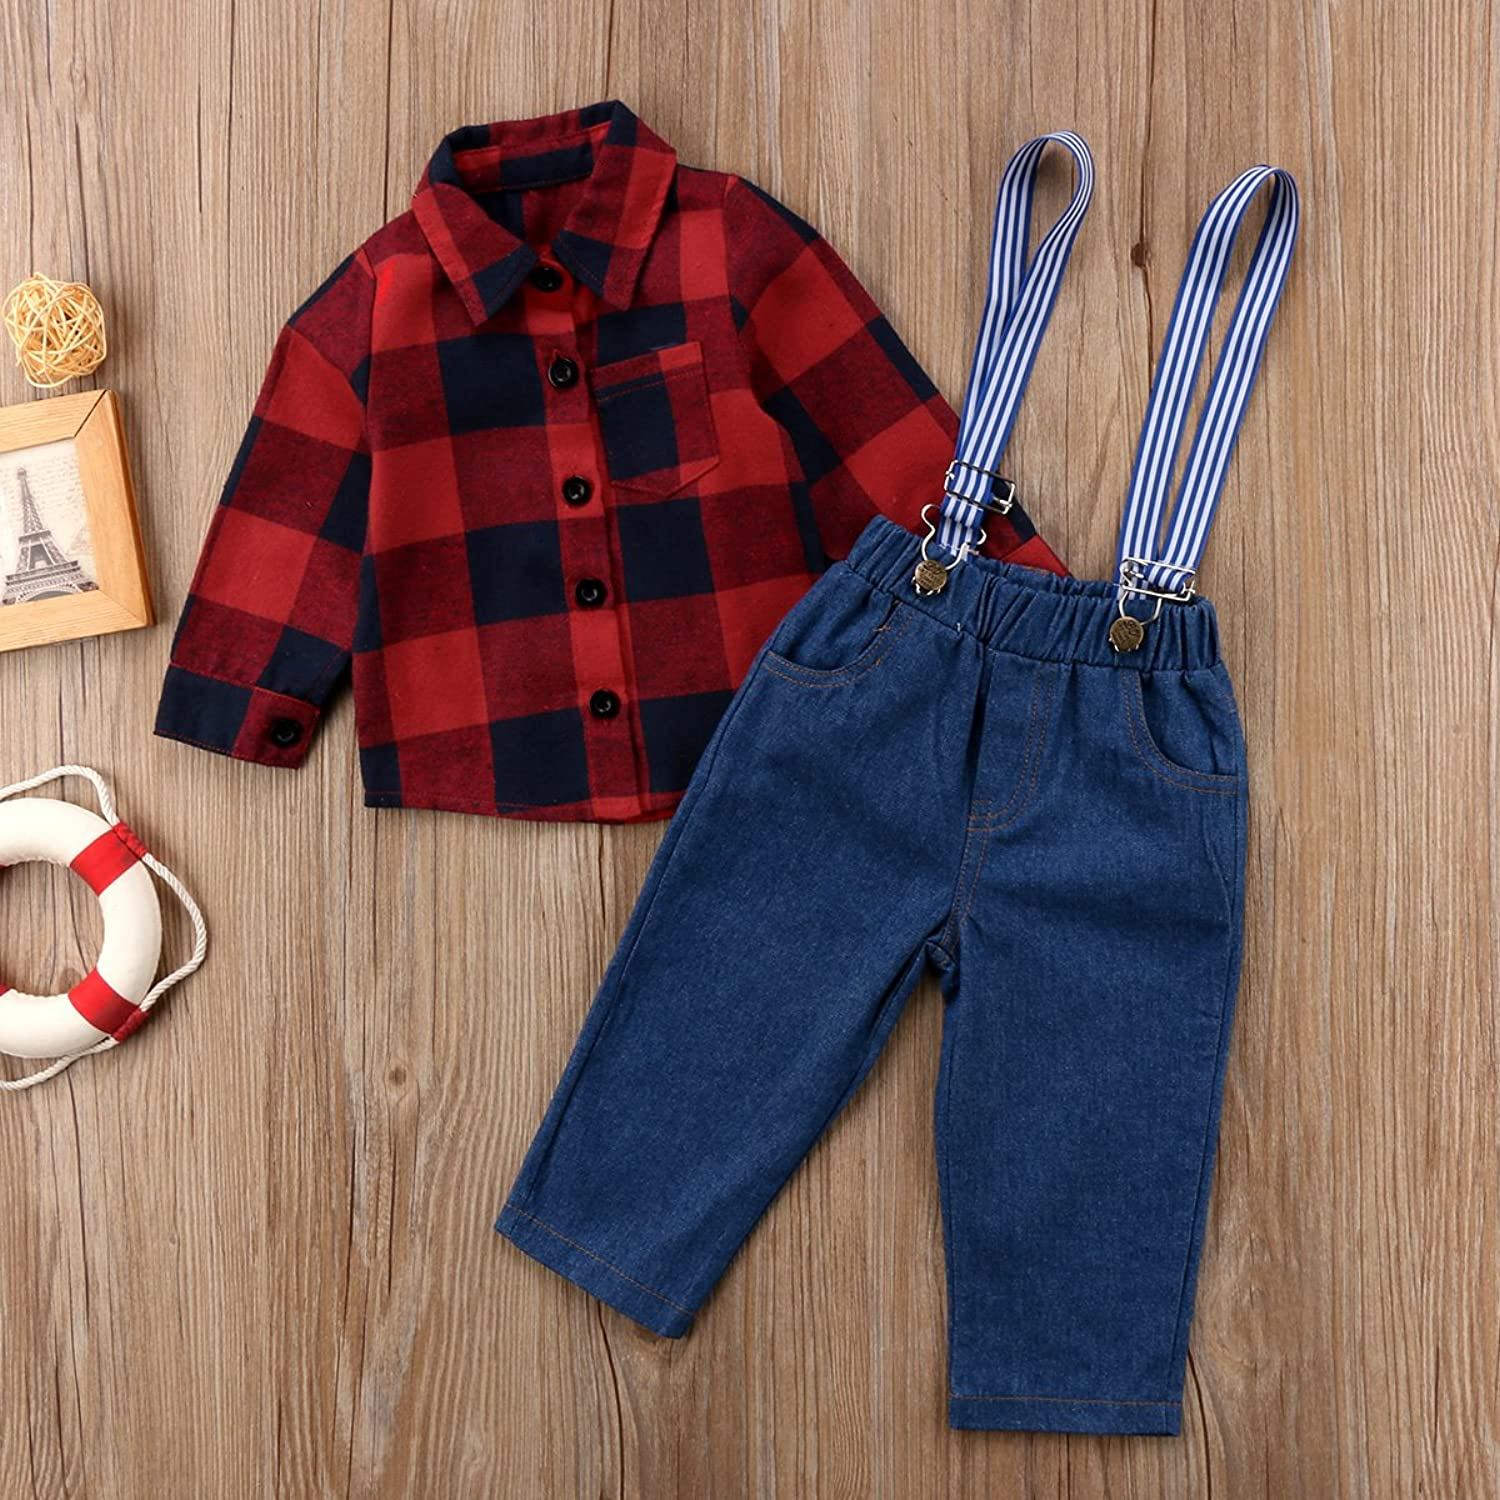 1940s Children's Clothing: Girls, Boys, Baby, Toddler Pudcoco Little Boys Long Sleeve Plaid Button-Down Shirt and Denim Overall Jeans Outfit Set $8.99 AT vintagedancer.com